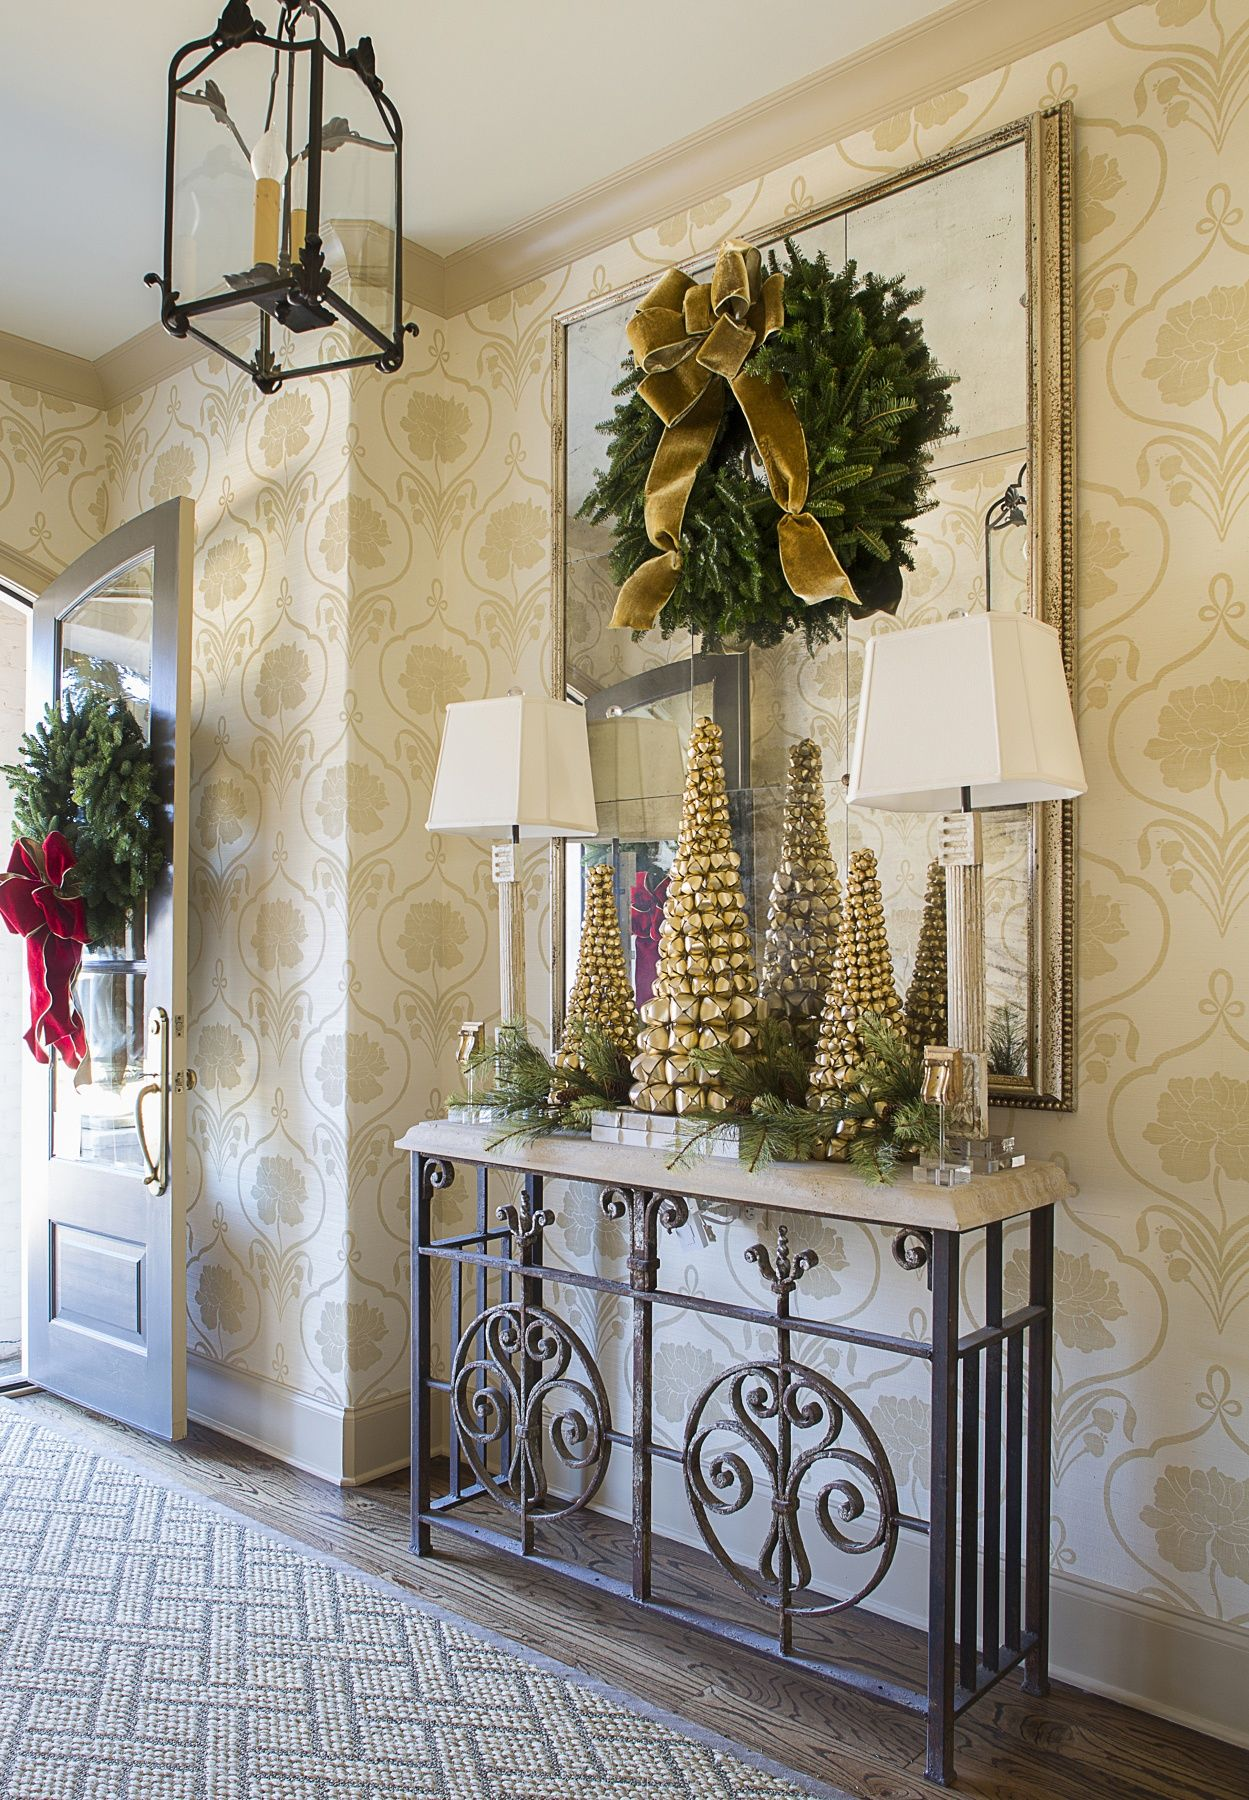 8 Approaches to Holiday Decor — Each Festive & Bright ...